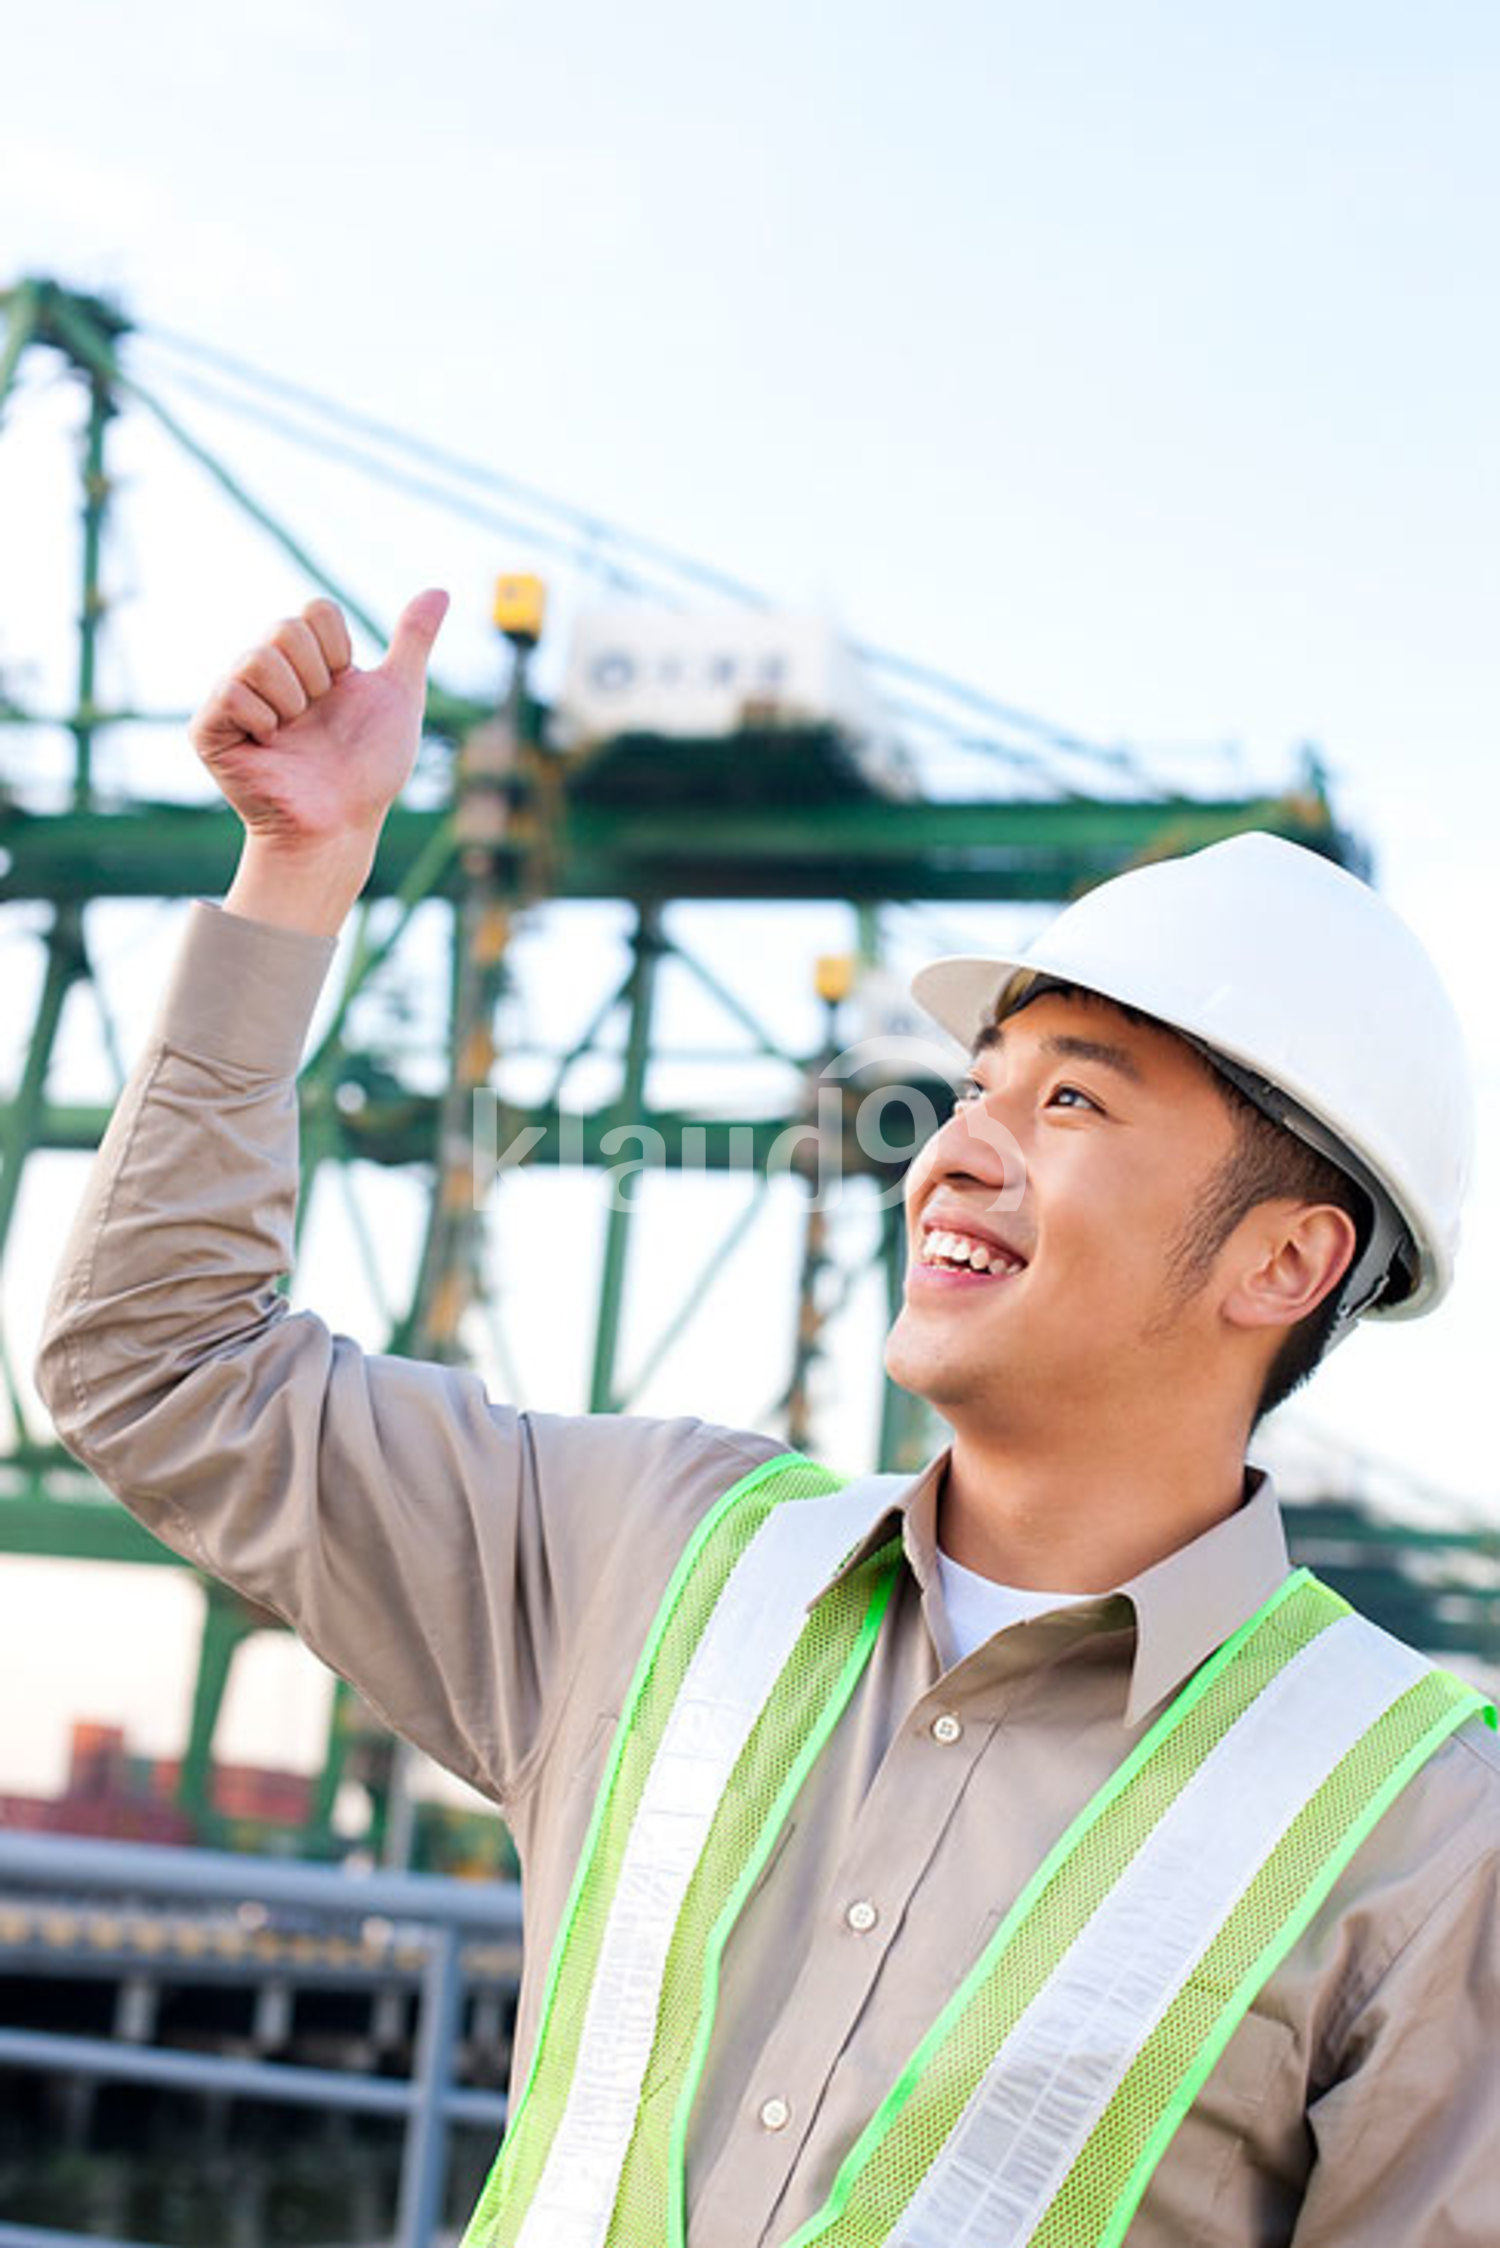 Chinese shipping industry worker giving the thumbs-up signal